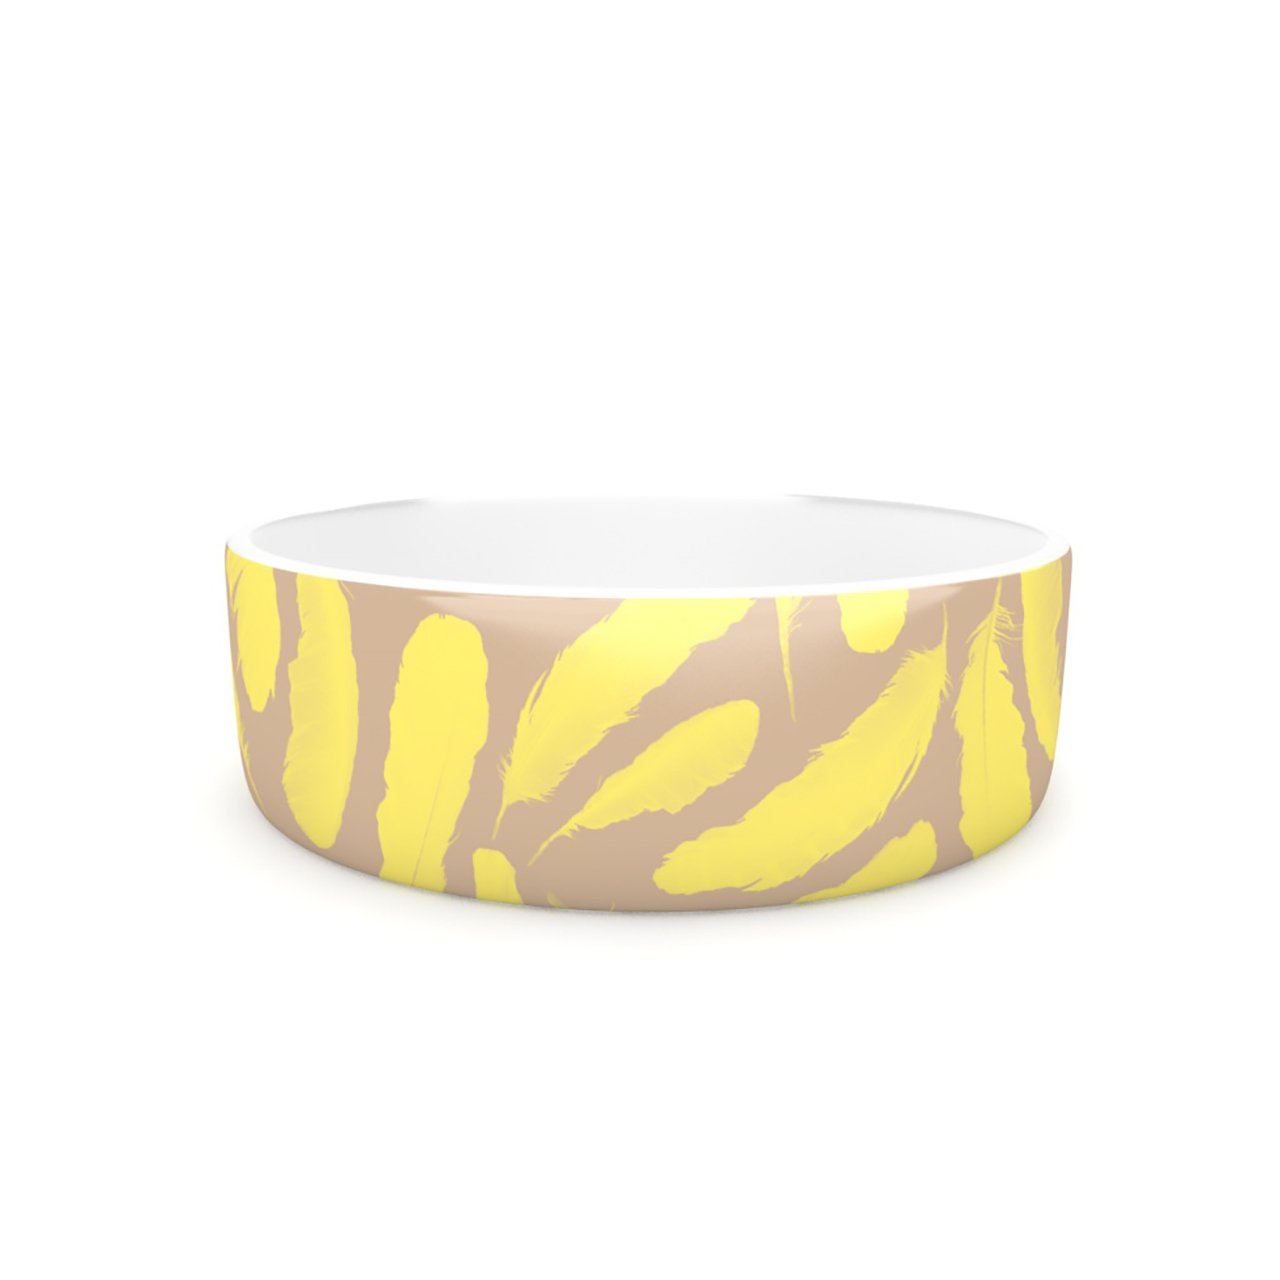 Kess InHouse Skye Zambrana Yellow Feather  Pet Bowl, 7-Inch, Tan gold